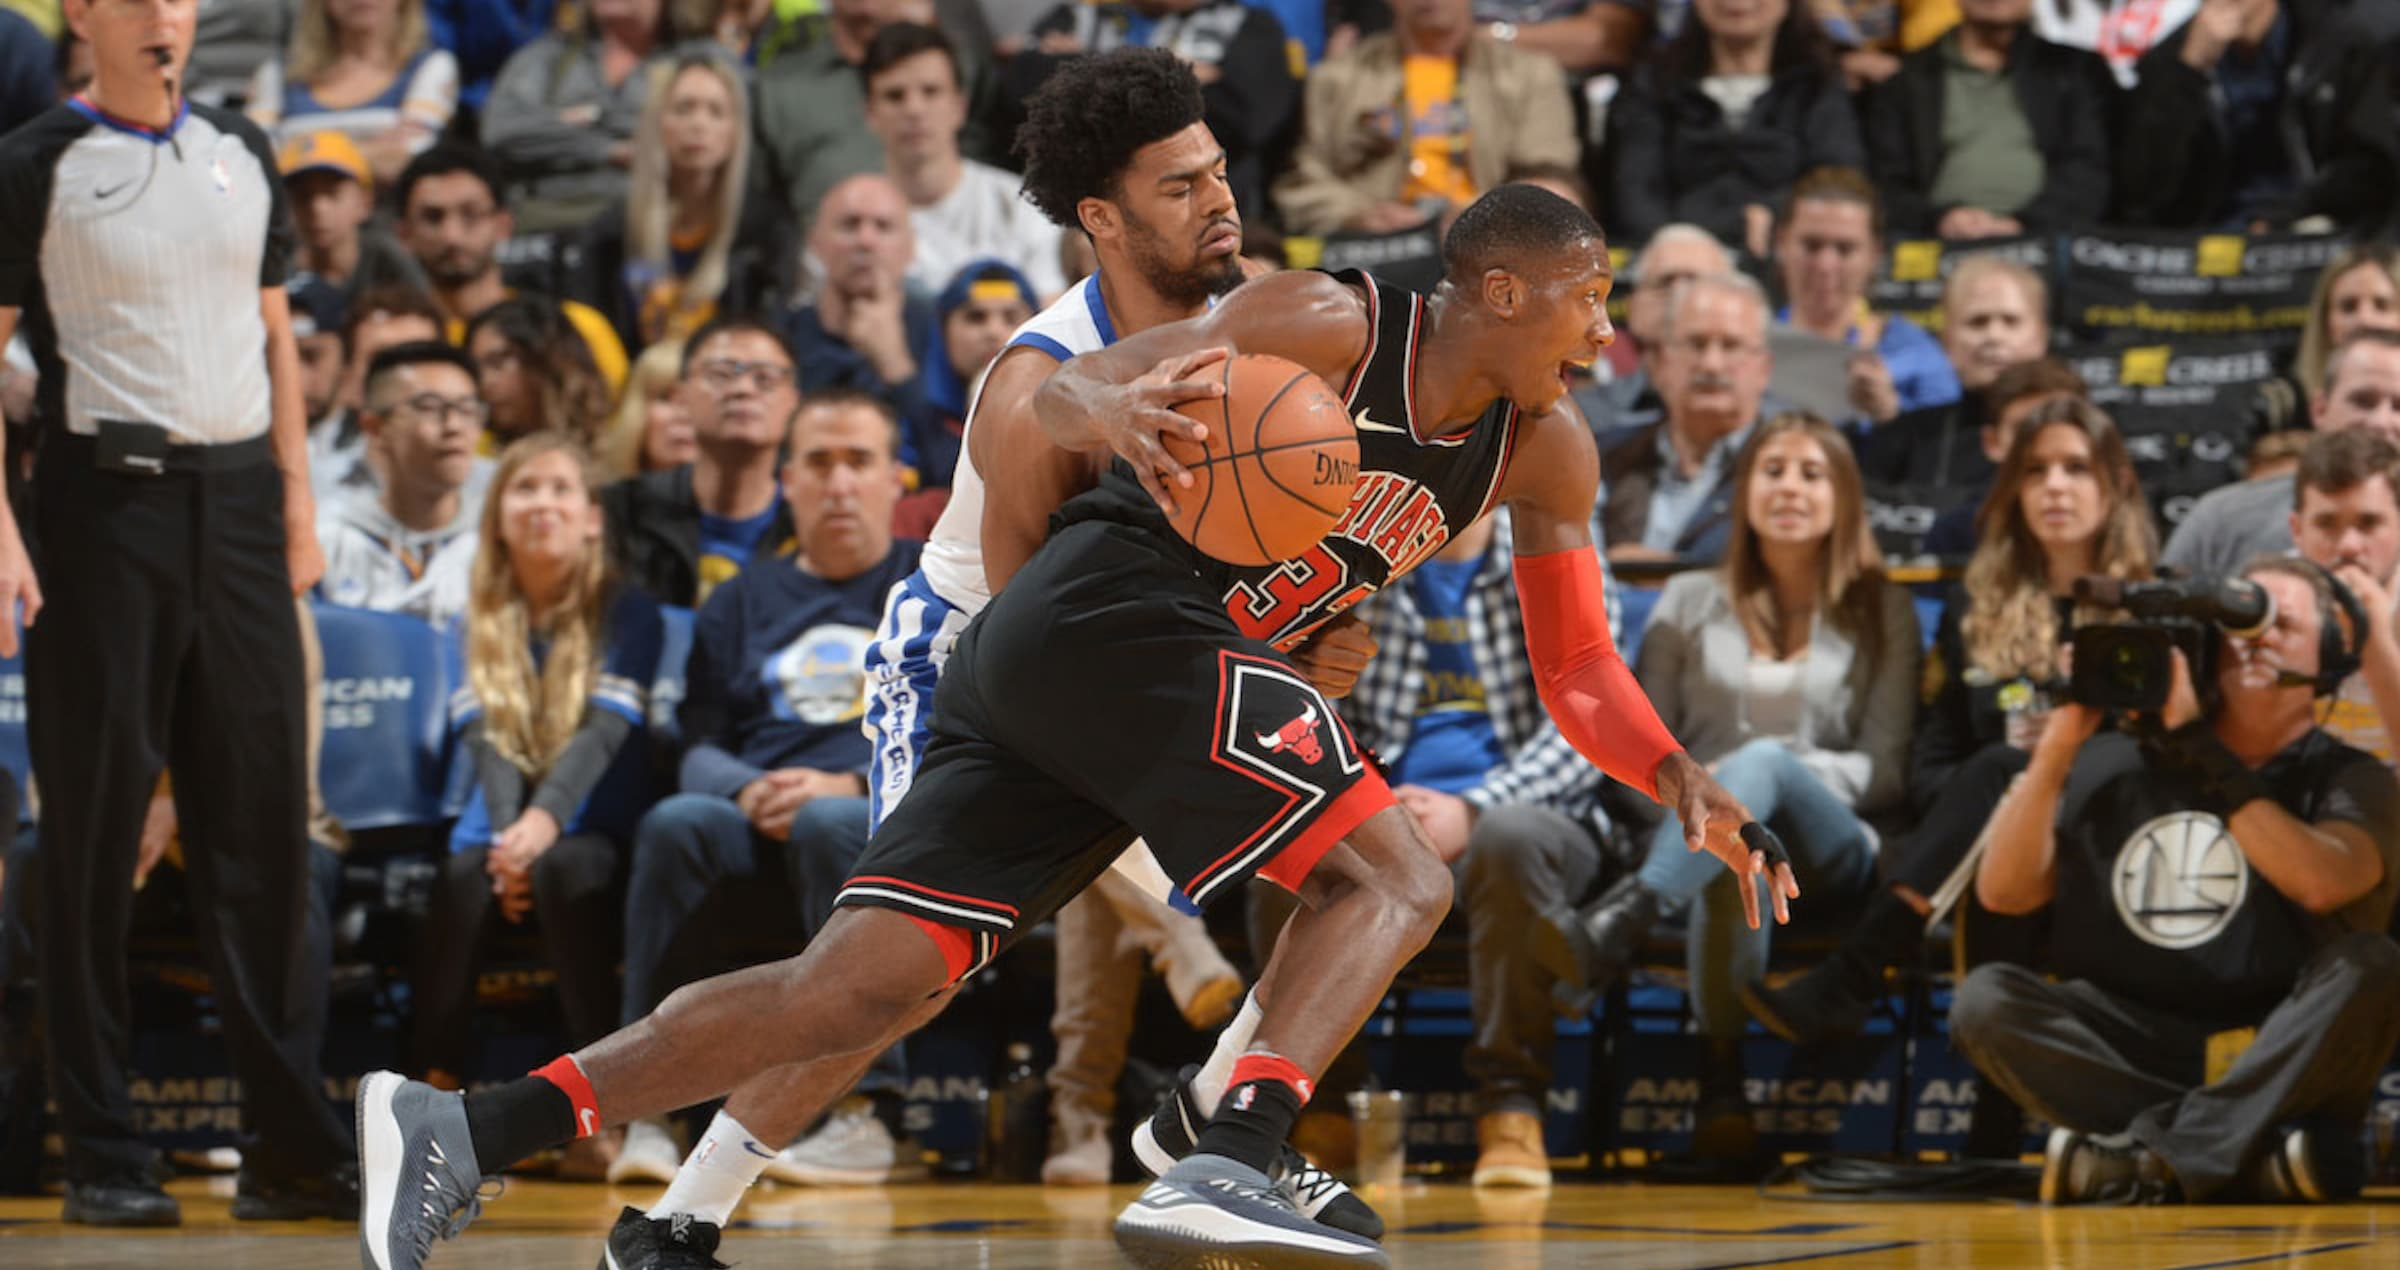 Kris Dunn #32 of the Chicago Bulls handles the ball against the Golden State Warriors on November 24, 2017 at ORACLE Arena in Oakland, California.